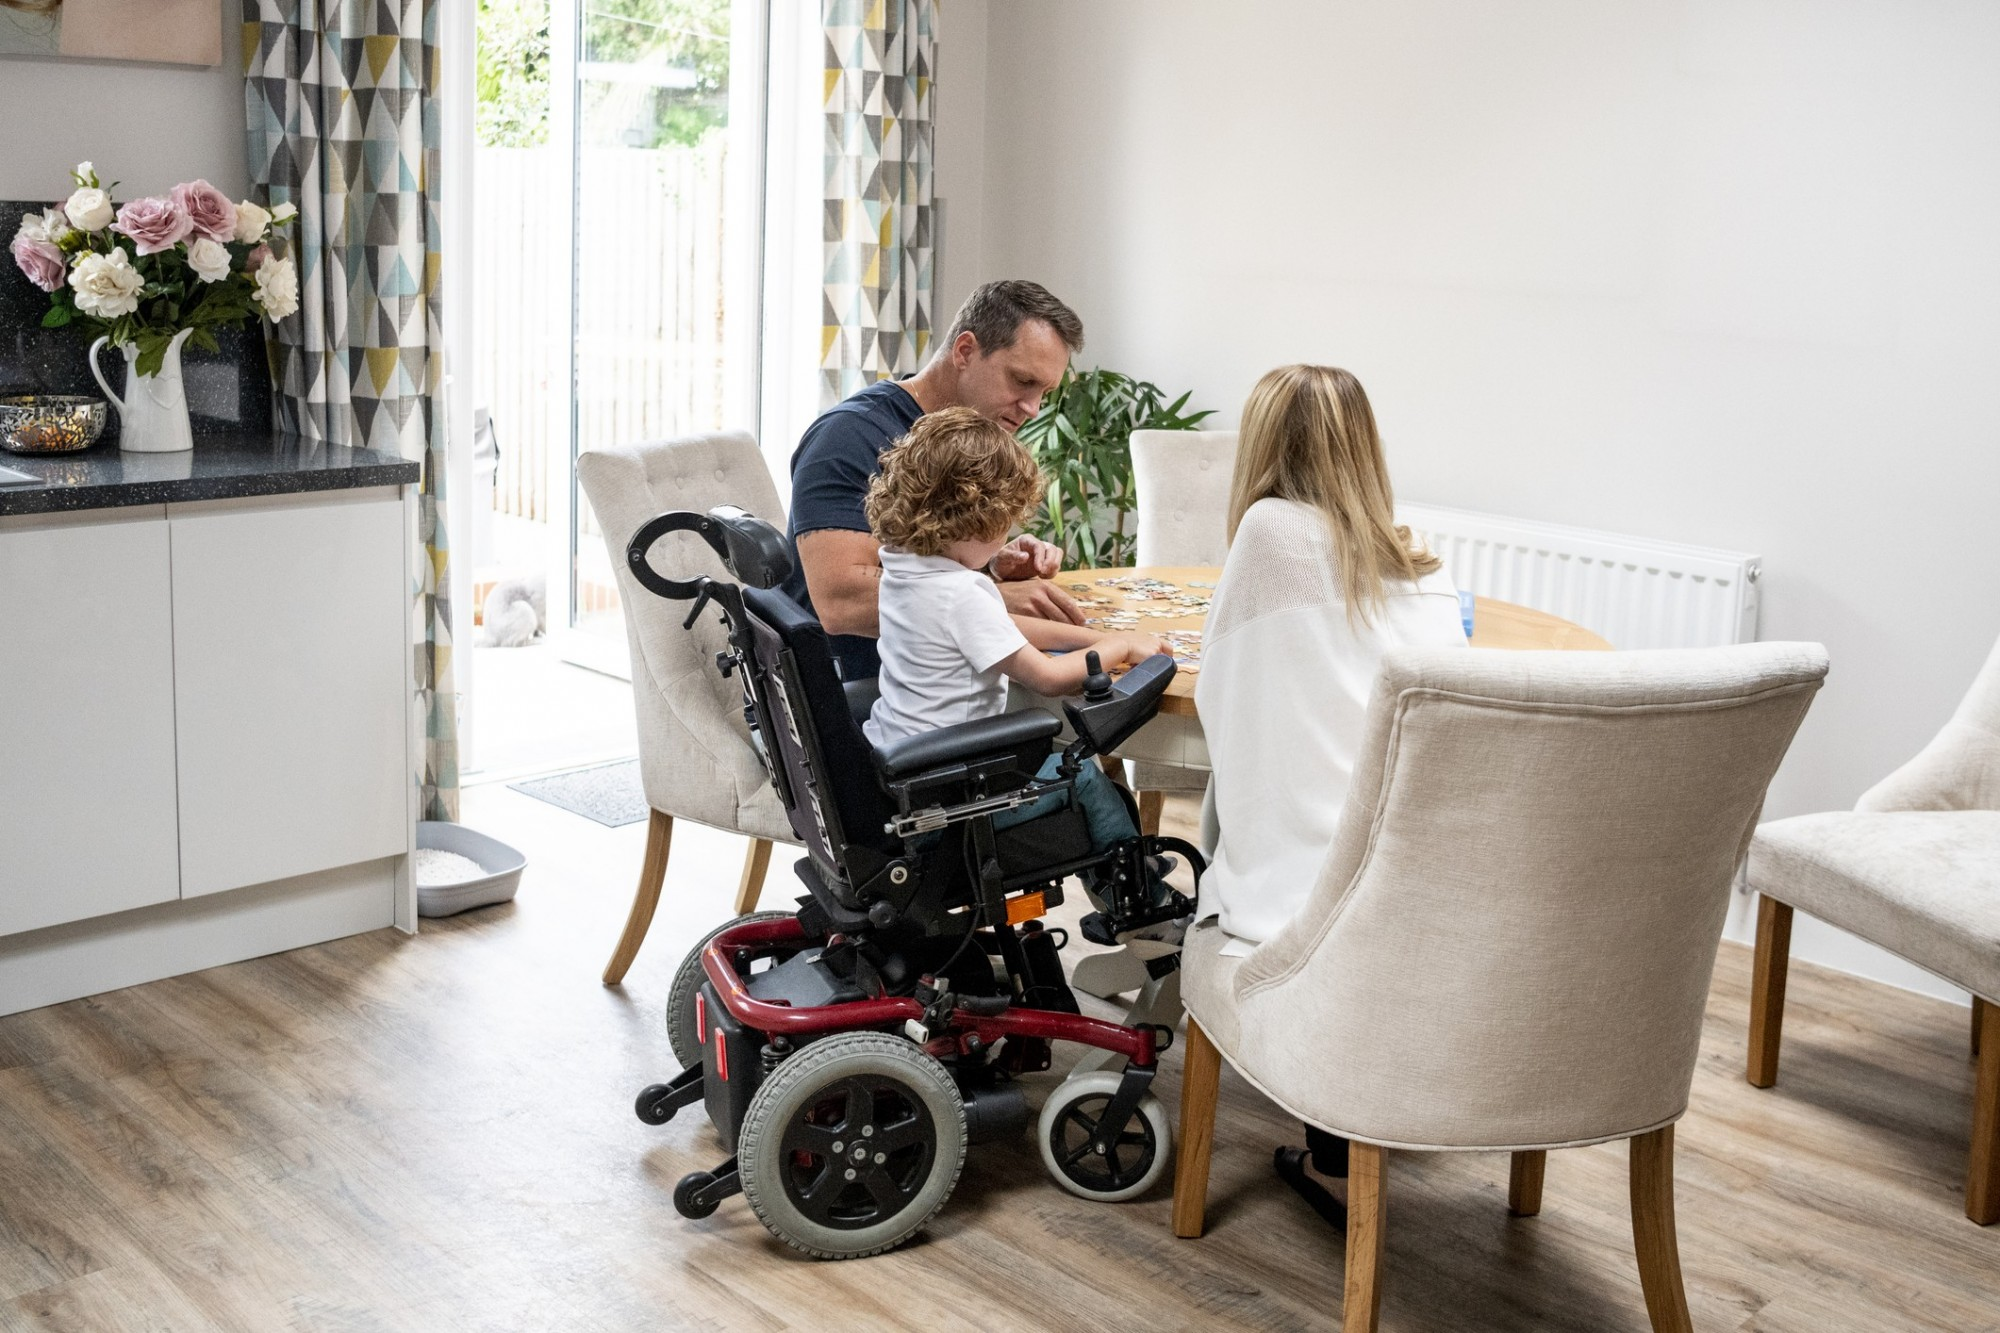 A family sit around the table in their kitchen playing a game together, the little boy is in a motorised wheelchair